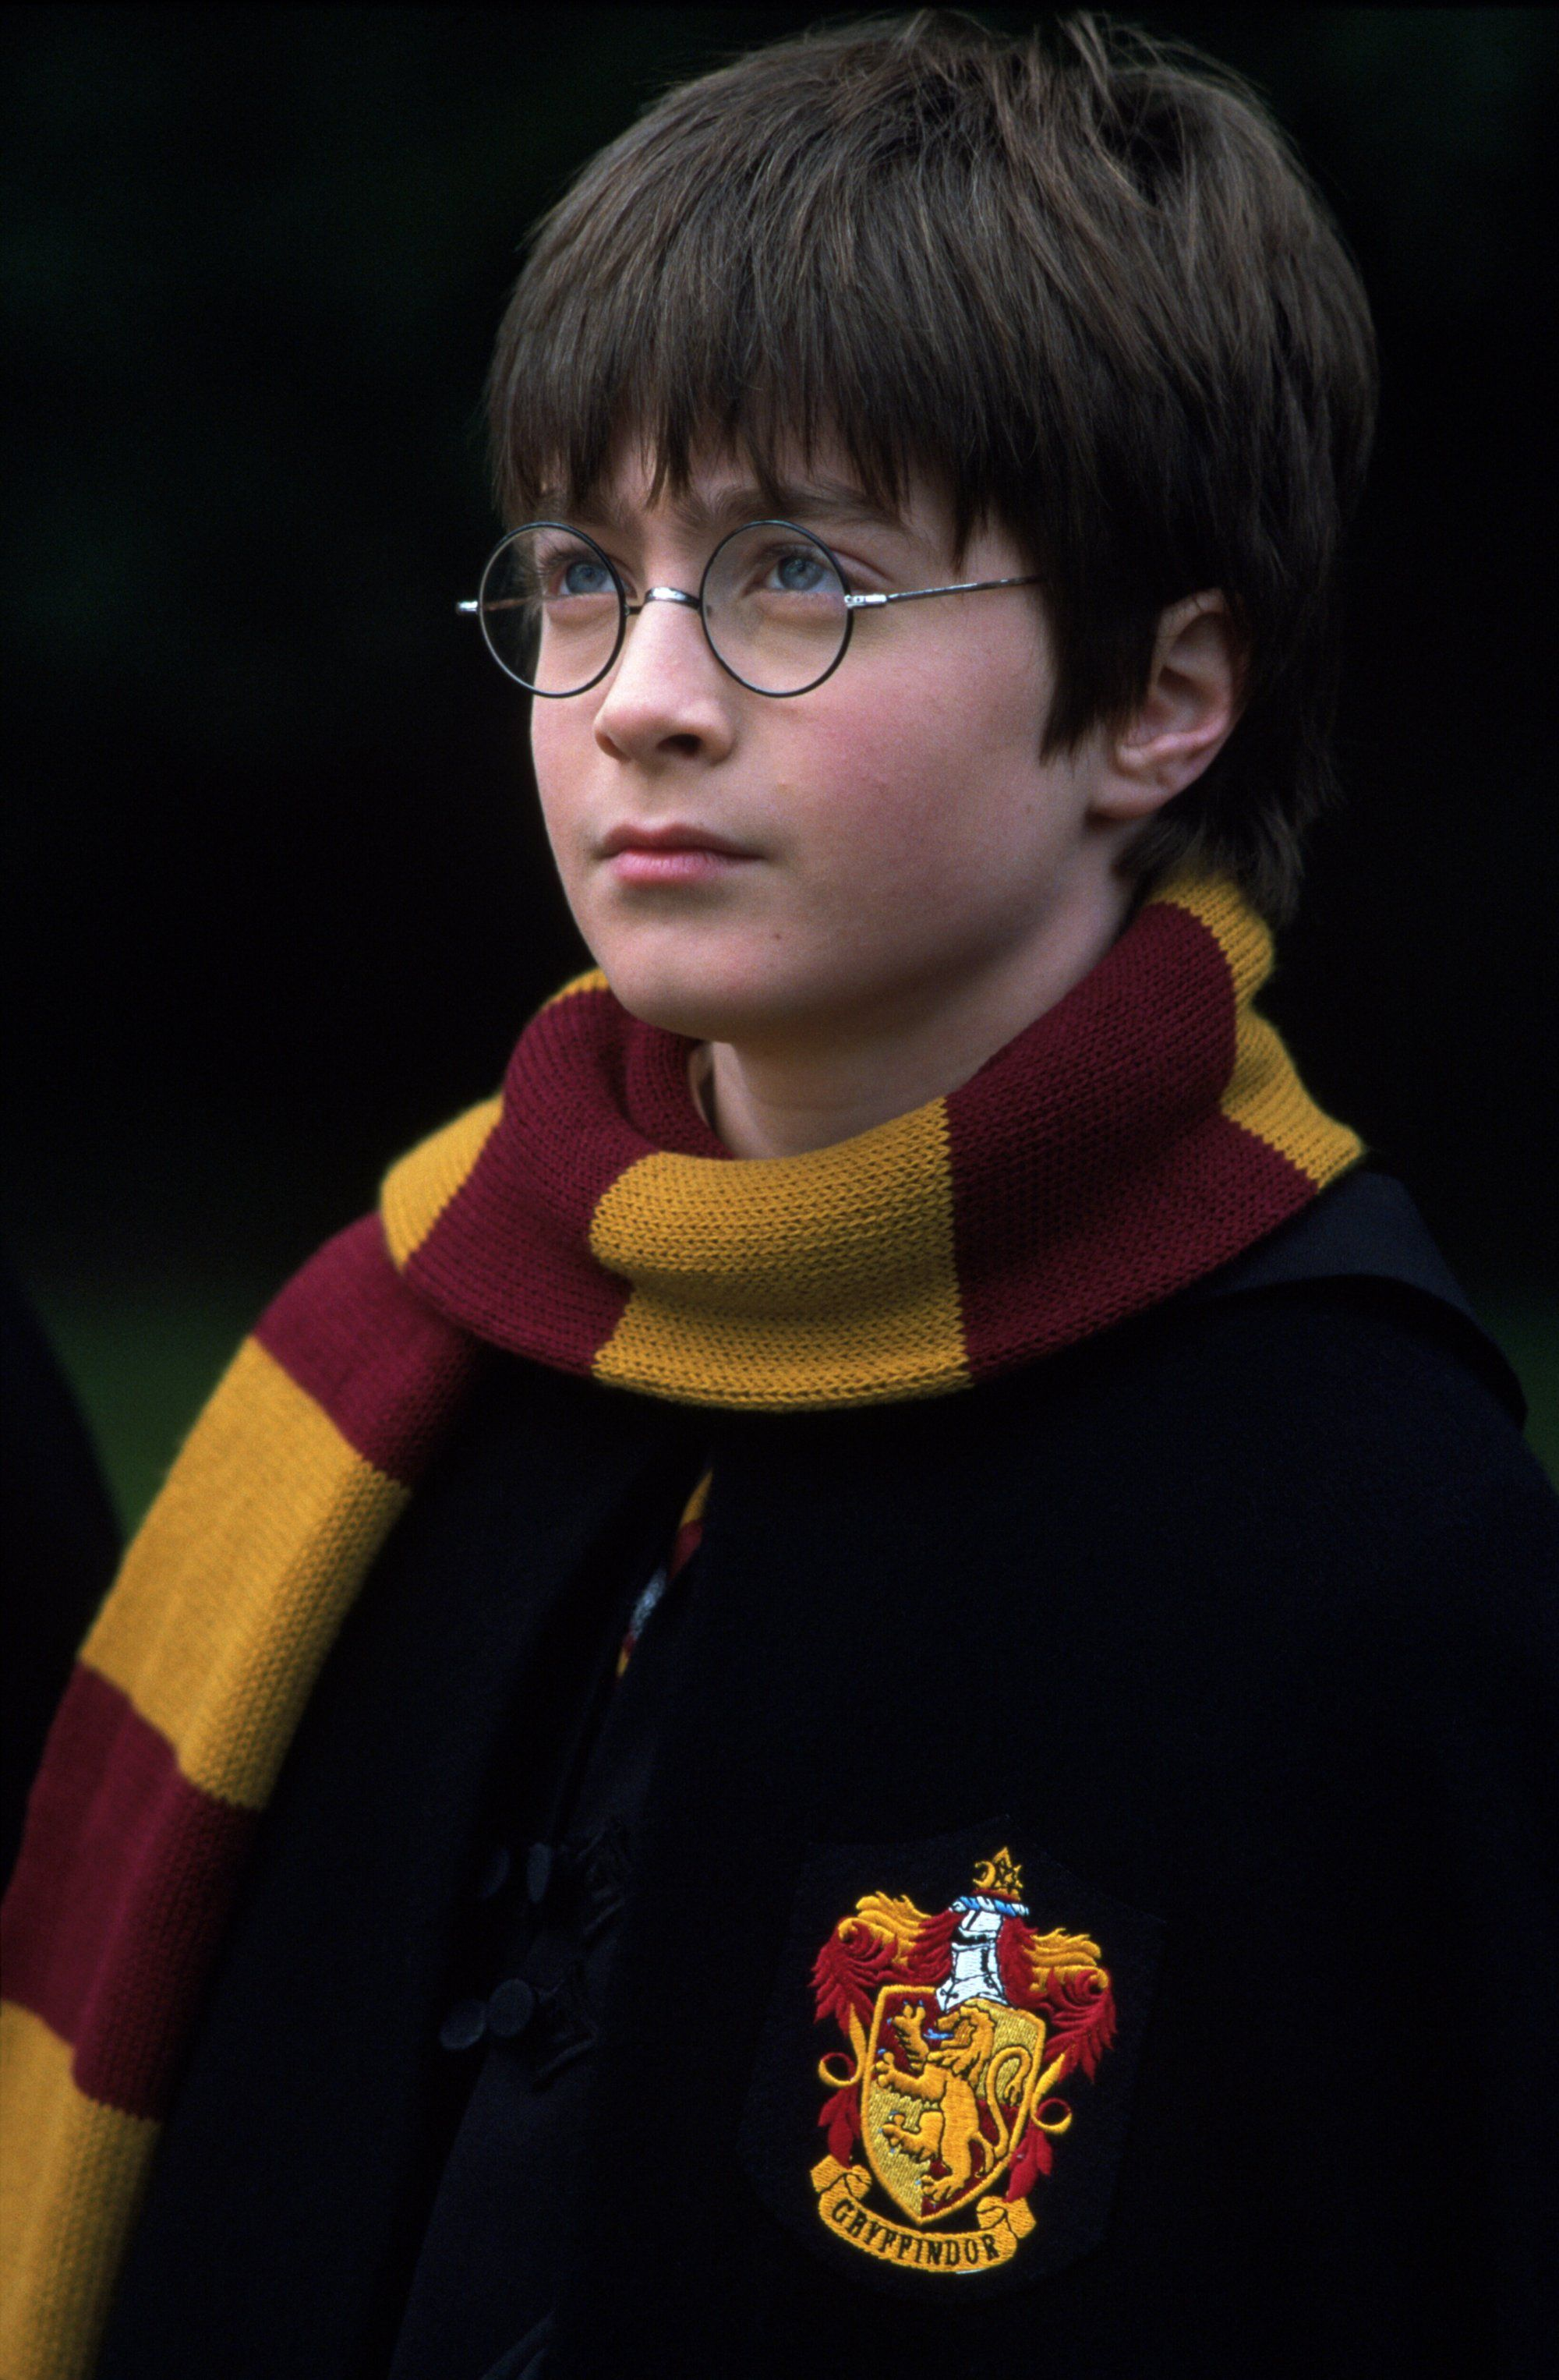 Harry Potter And The Philosopher S Stone Harry Potter Fan Theories Daniel Radcliffe Harry Potter Harry Potter Scarf